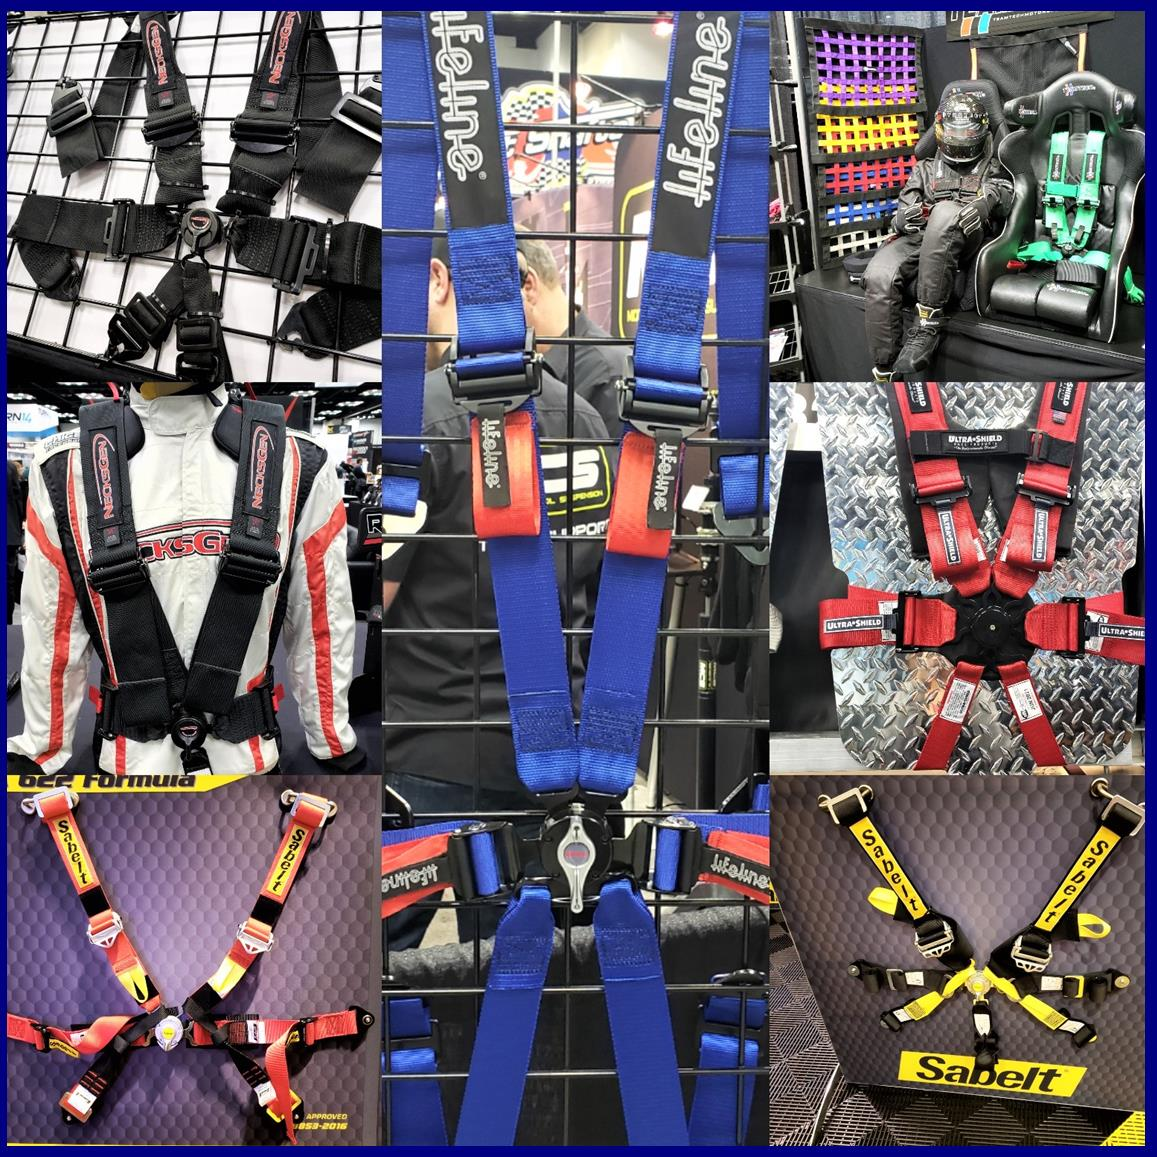 choices… - A myriad of choices from multiple manufacturers, but each manufacturer has to pass identical safety tests quantified from only two sanctioning bodies - the FIA or SFI. The tests are performed at appropriate, licensed facilities. FIA 8853-2016  Recently introduced and after 2023 all FIA belts will have been manufactured to this standard. The harness has to withstand forces of up to 70Gs, from multiple angles and more.SFI 16.1 The harness must not break under 6,300lbs SF2 16.2 A youth harness (lower) ratingSFI 16.5 The harness must not break under 7,000lbs. Designed for the rigors of off-roading